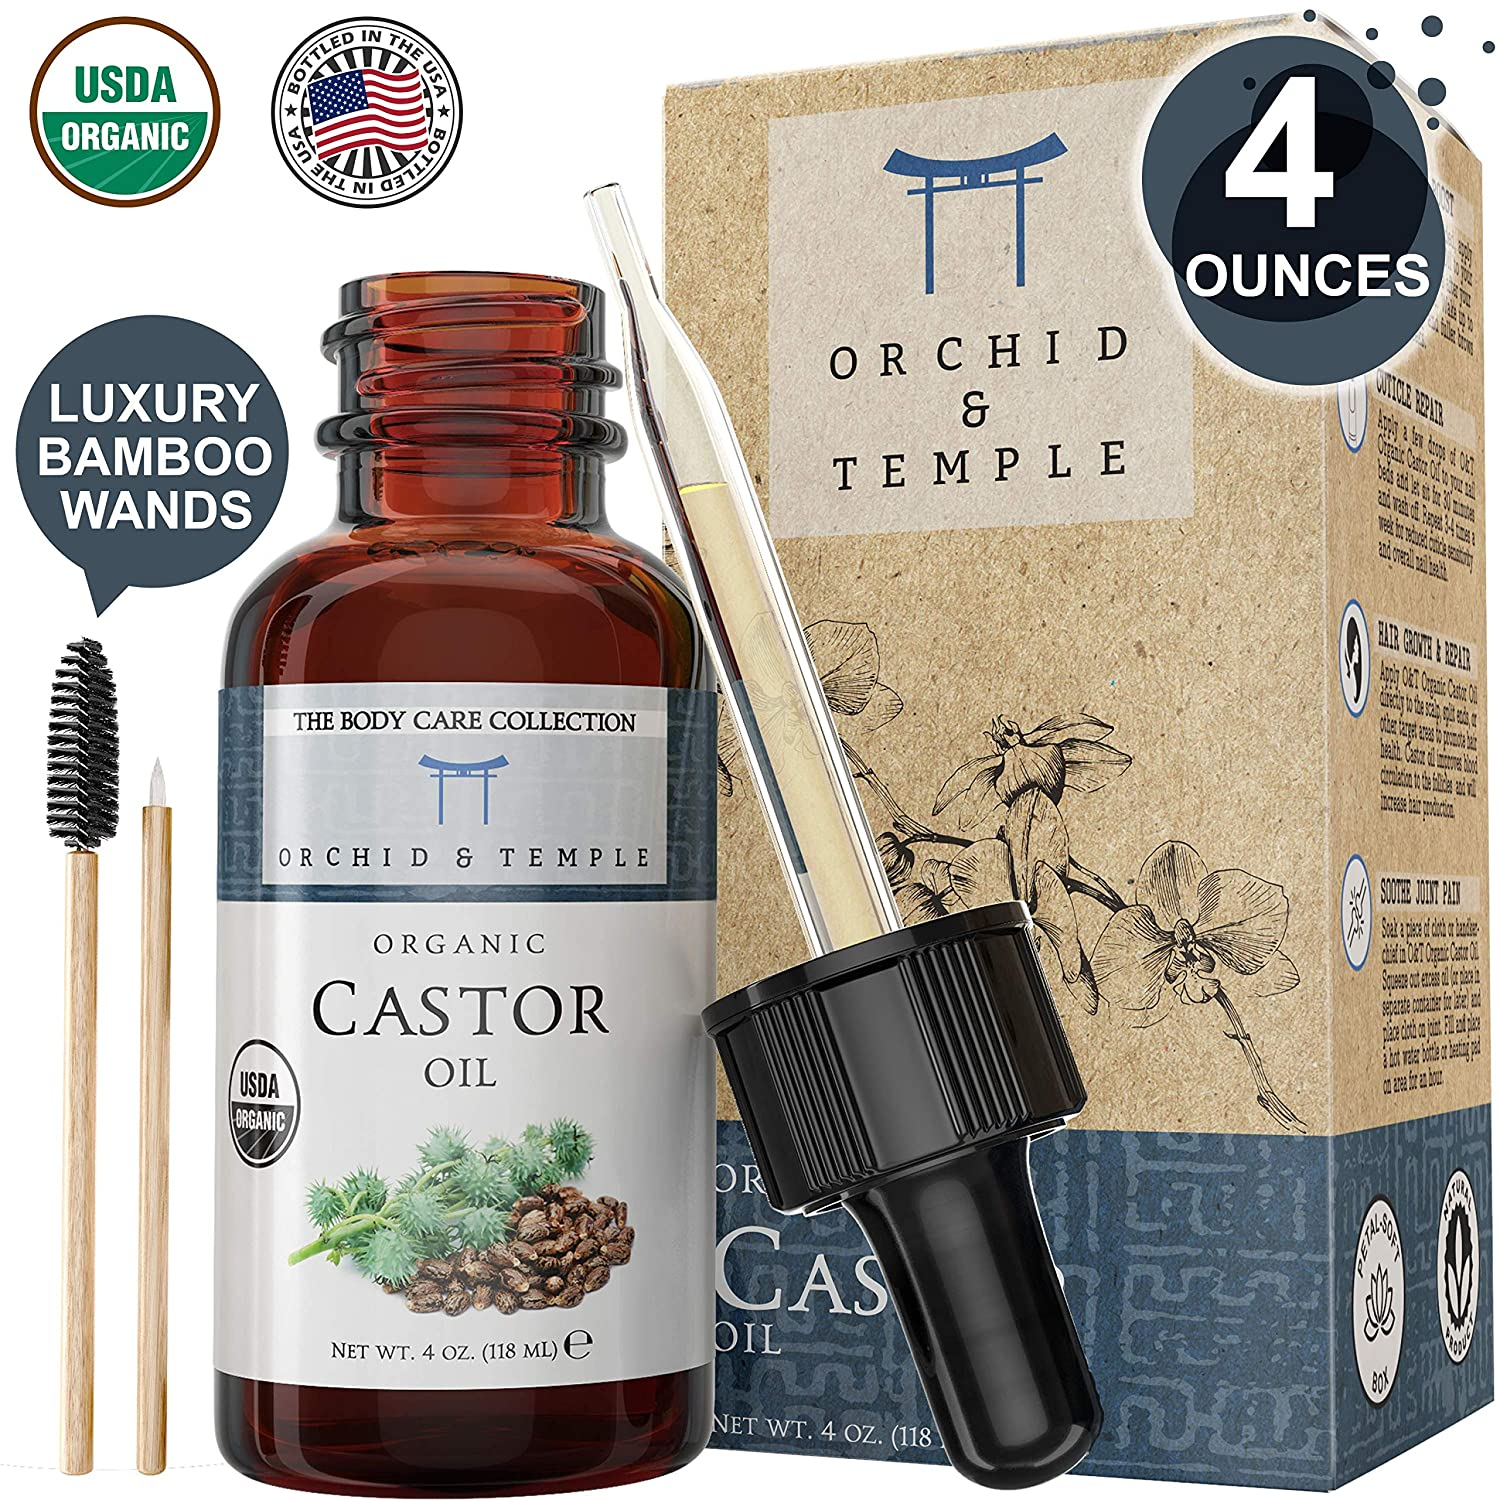 USDA Certified Organic Castor Oil. 4 oz Bottle w Dropper & Bamboo Wand. Pure Therapeutic Grade Undiluted. Cold-Pressed, Hexane Free, and Extra Virgin